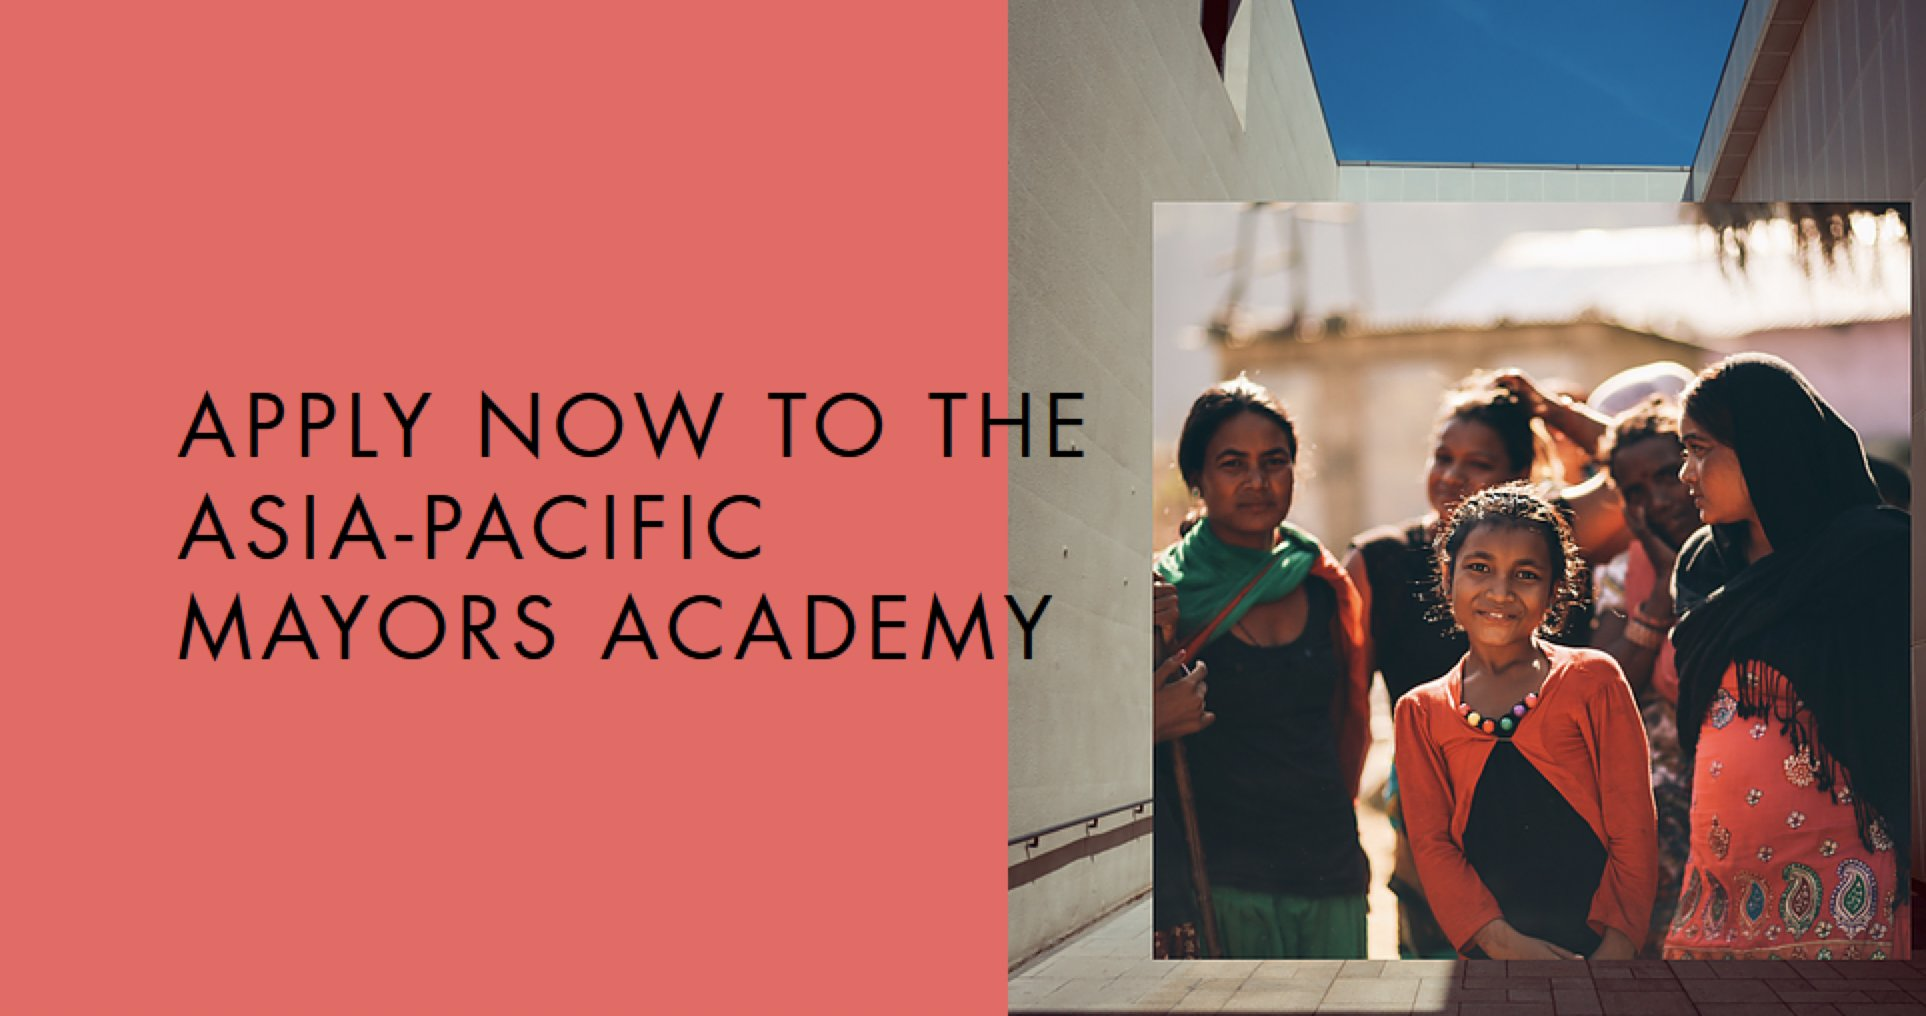 Asia-Pacific Mayors Academy Fellowship Programme 2020